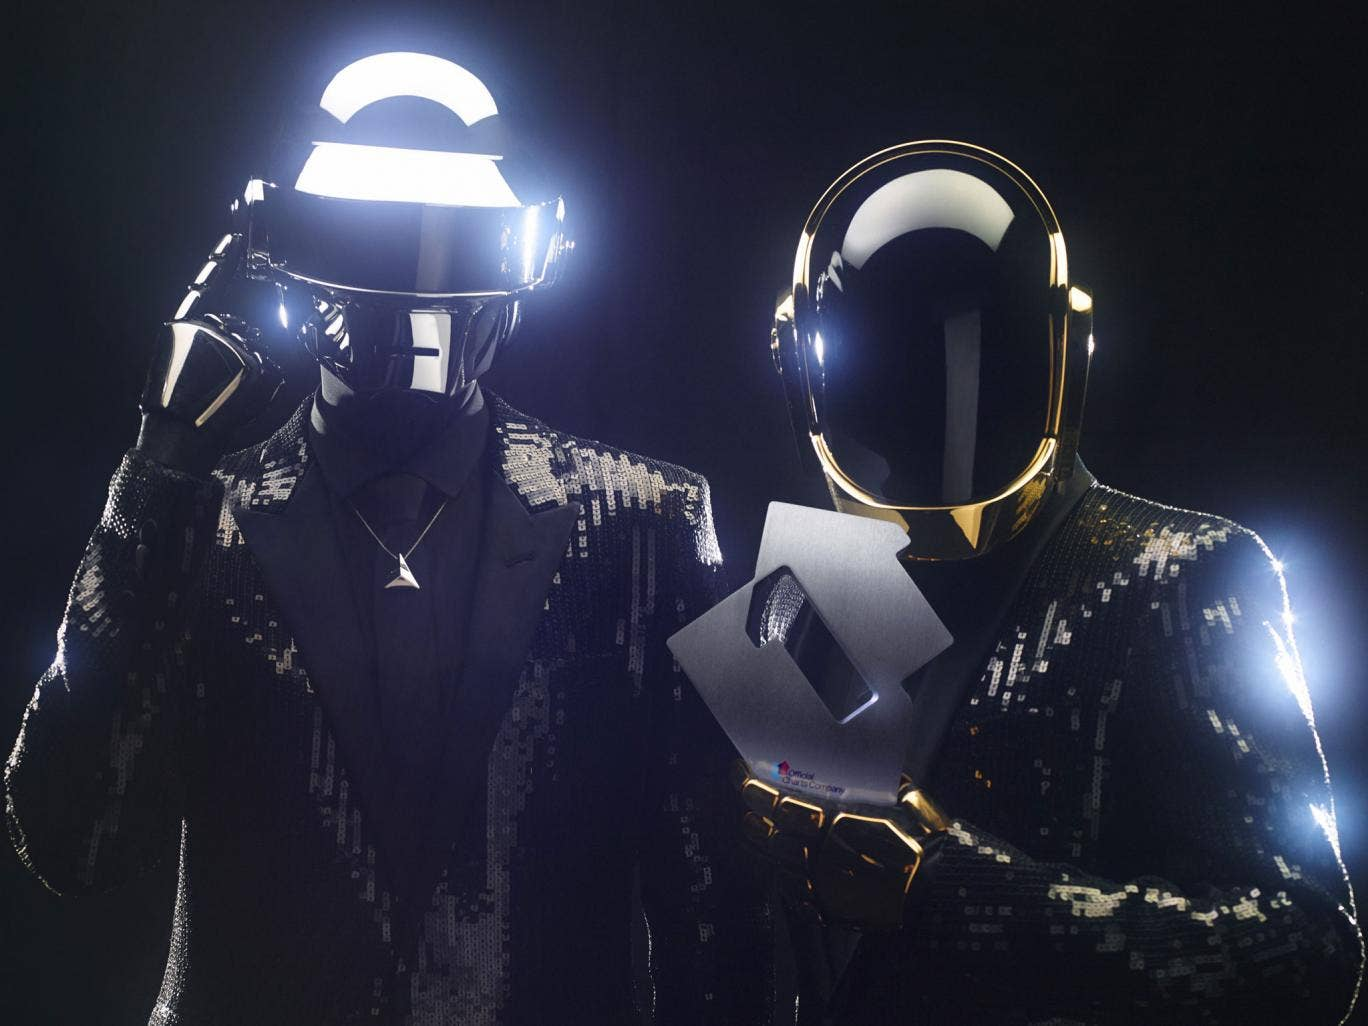 Daft Punk's track 'Get Lucky' is at No 1